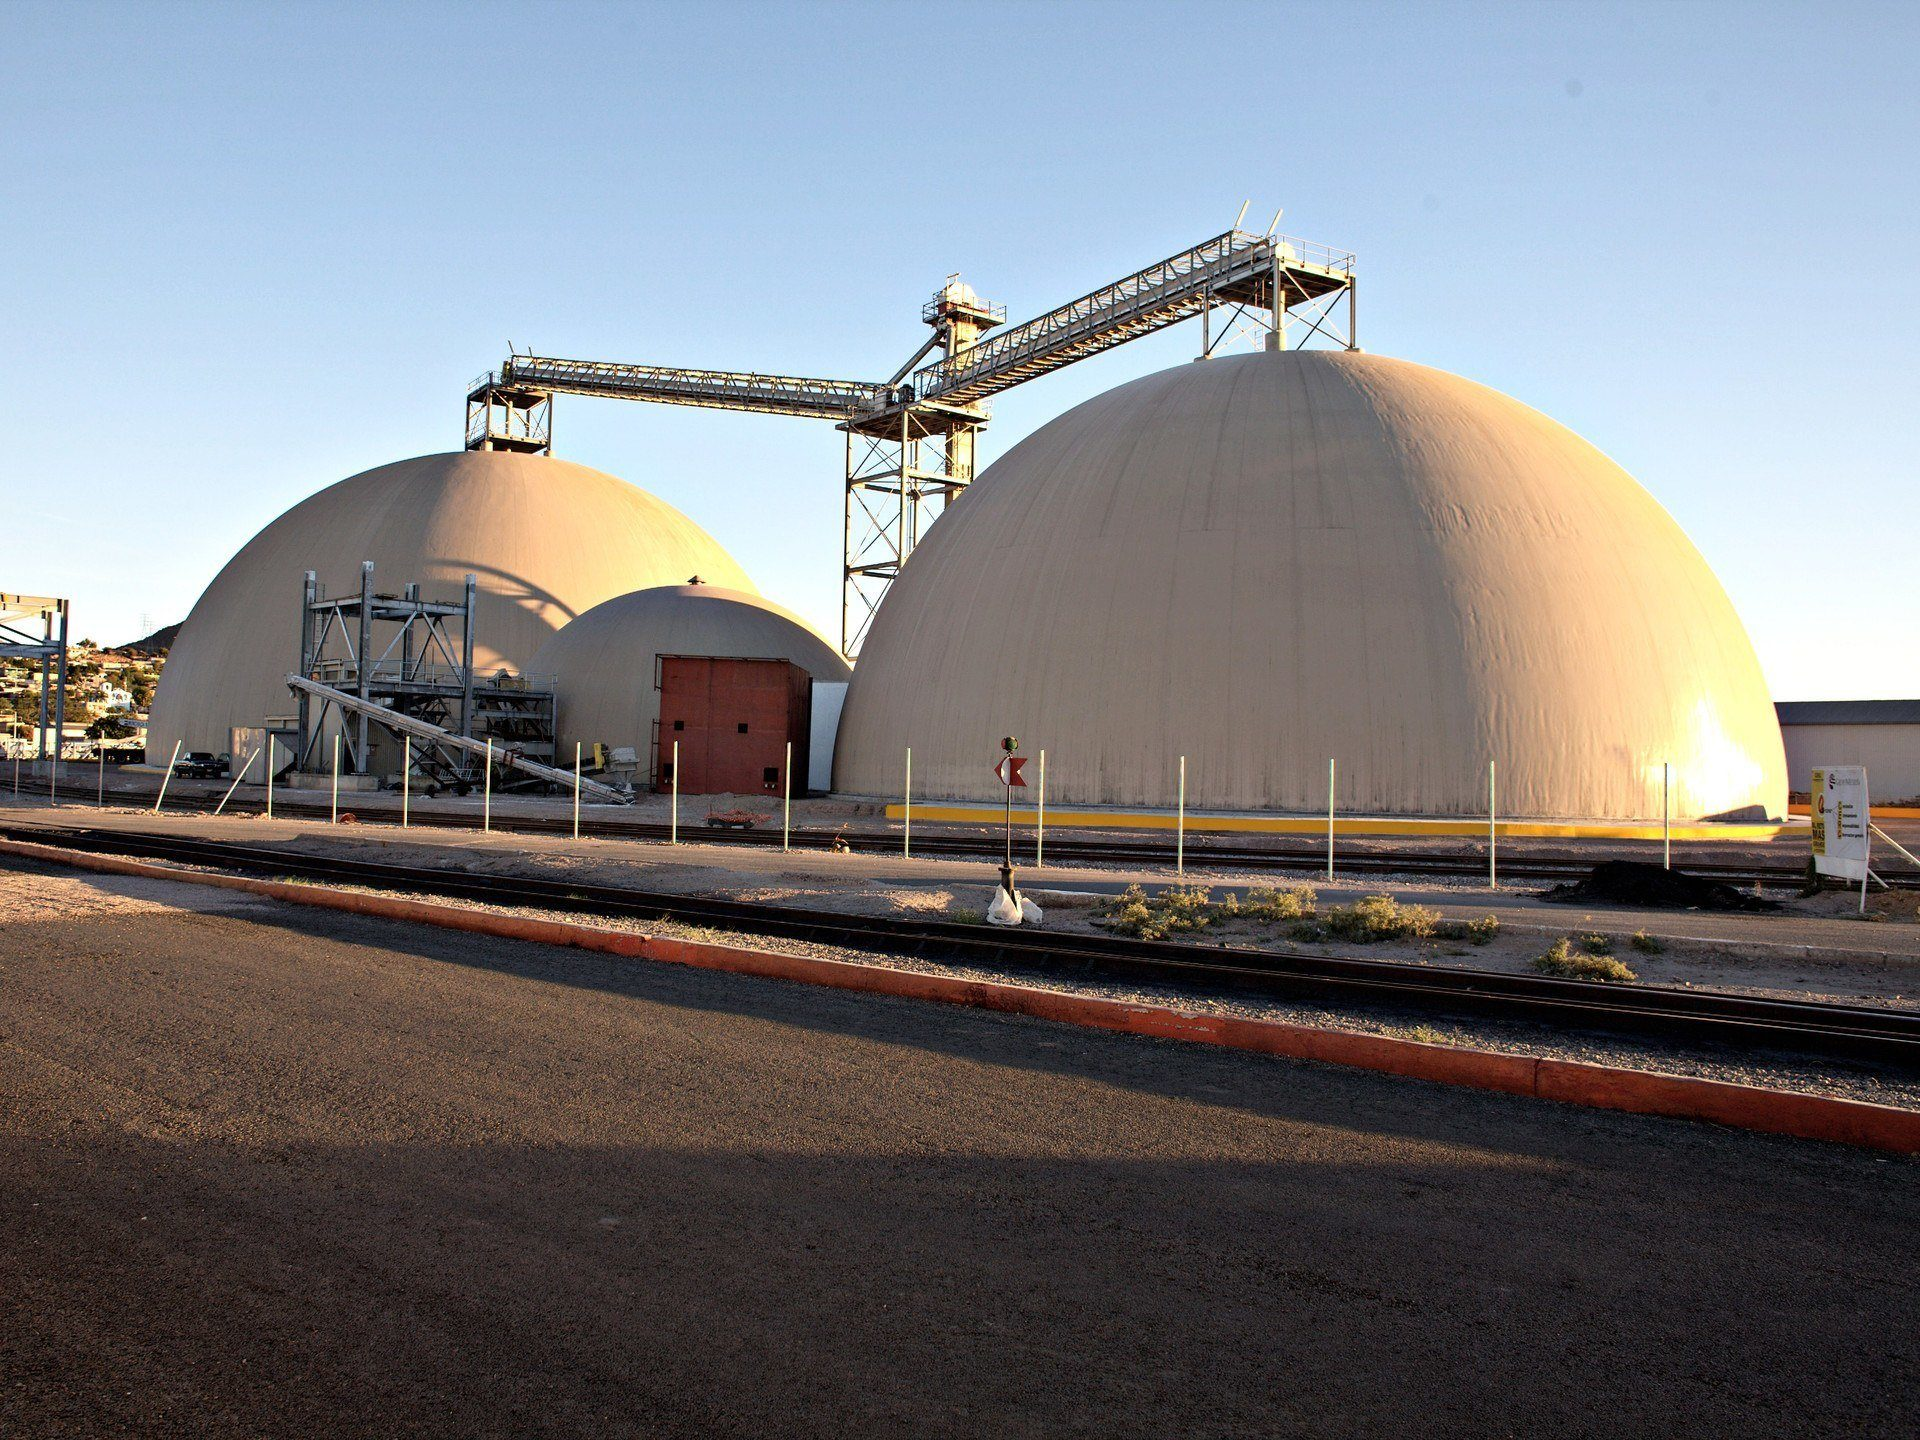 Urea bulk storage domes